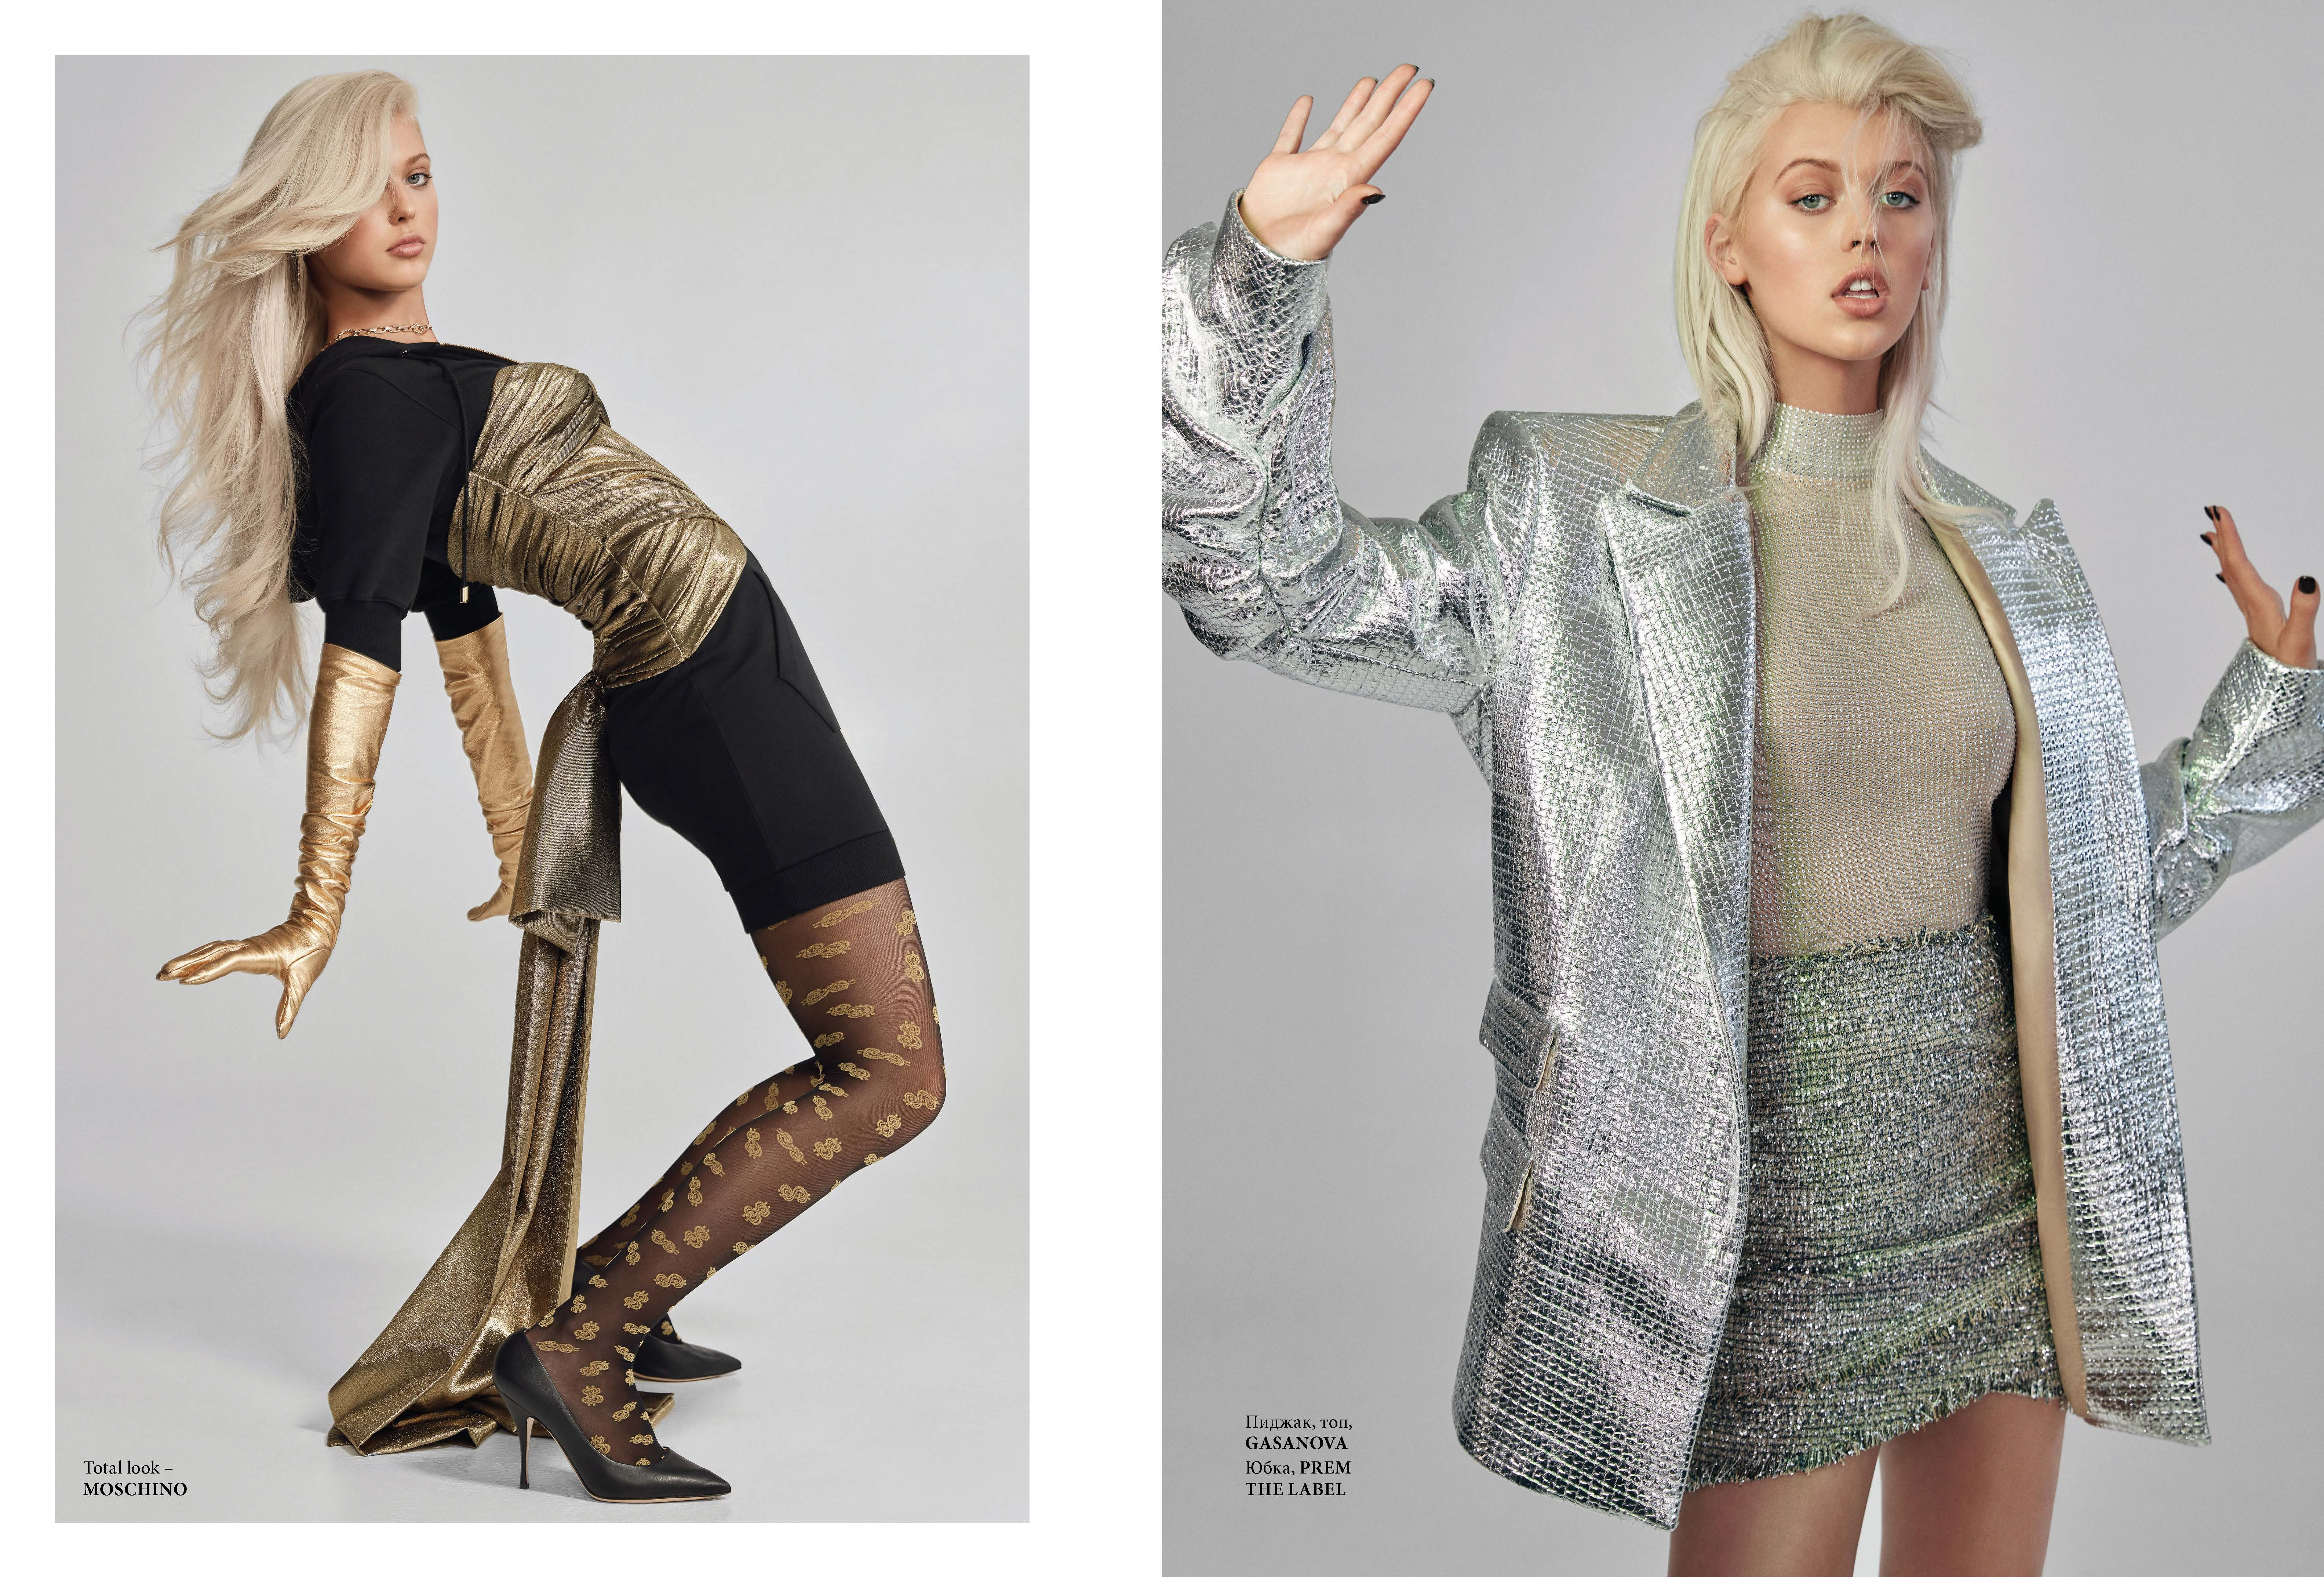 Loren Gray L'Officiel Baltic